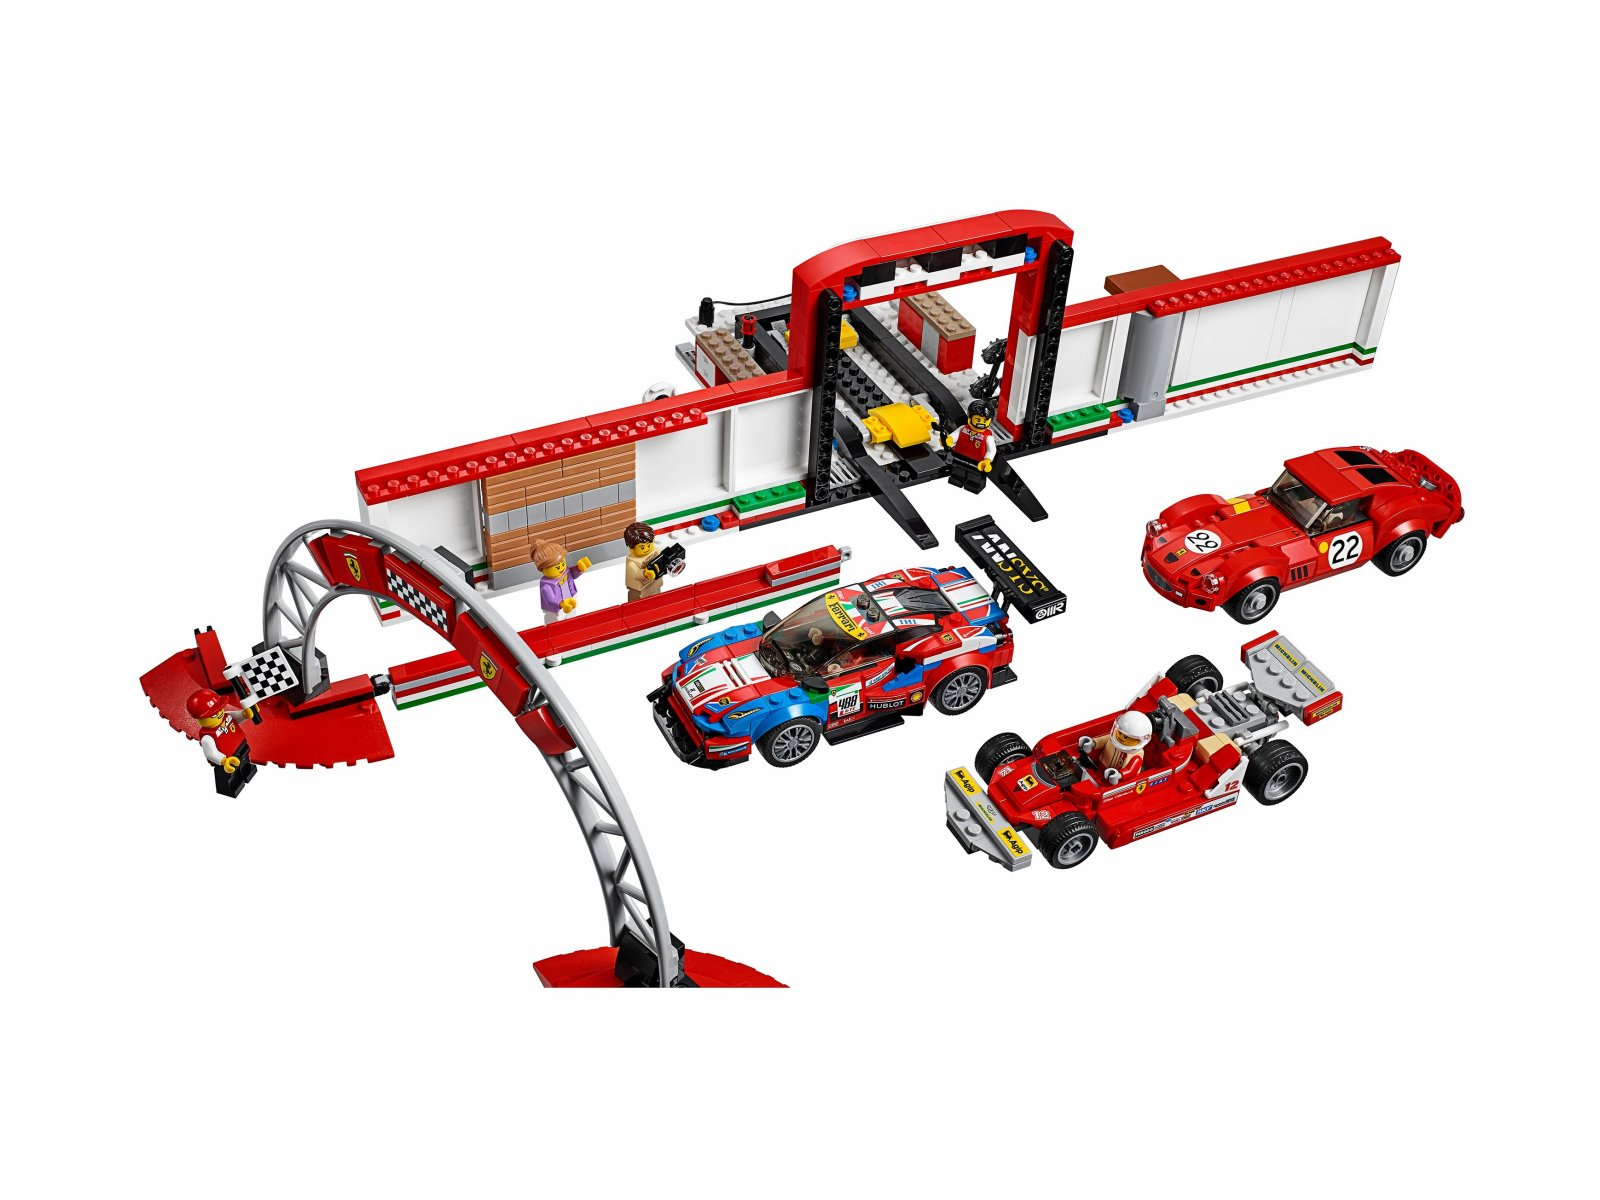 75889 lego speed champions rewelacyjny warsztat ferrari. Black Bedroom Furniture Sets. Home Design Ideas